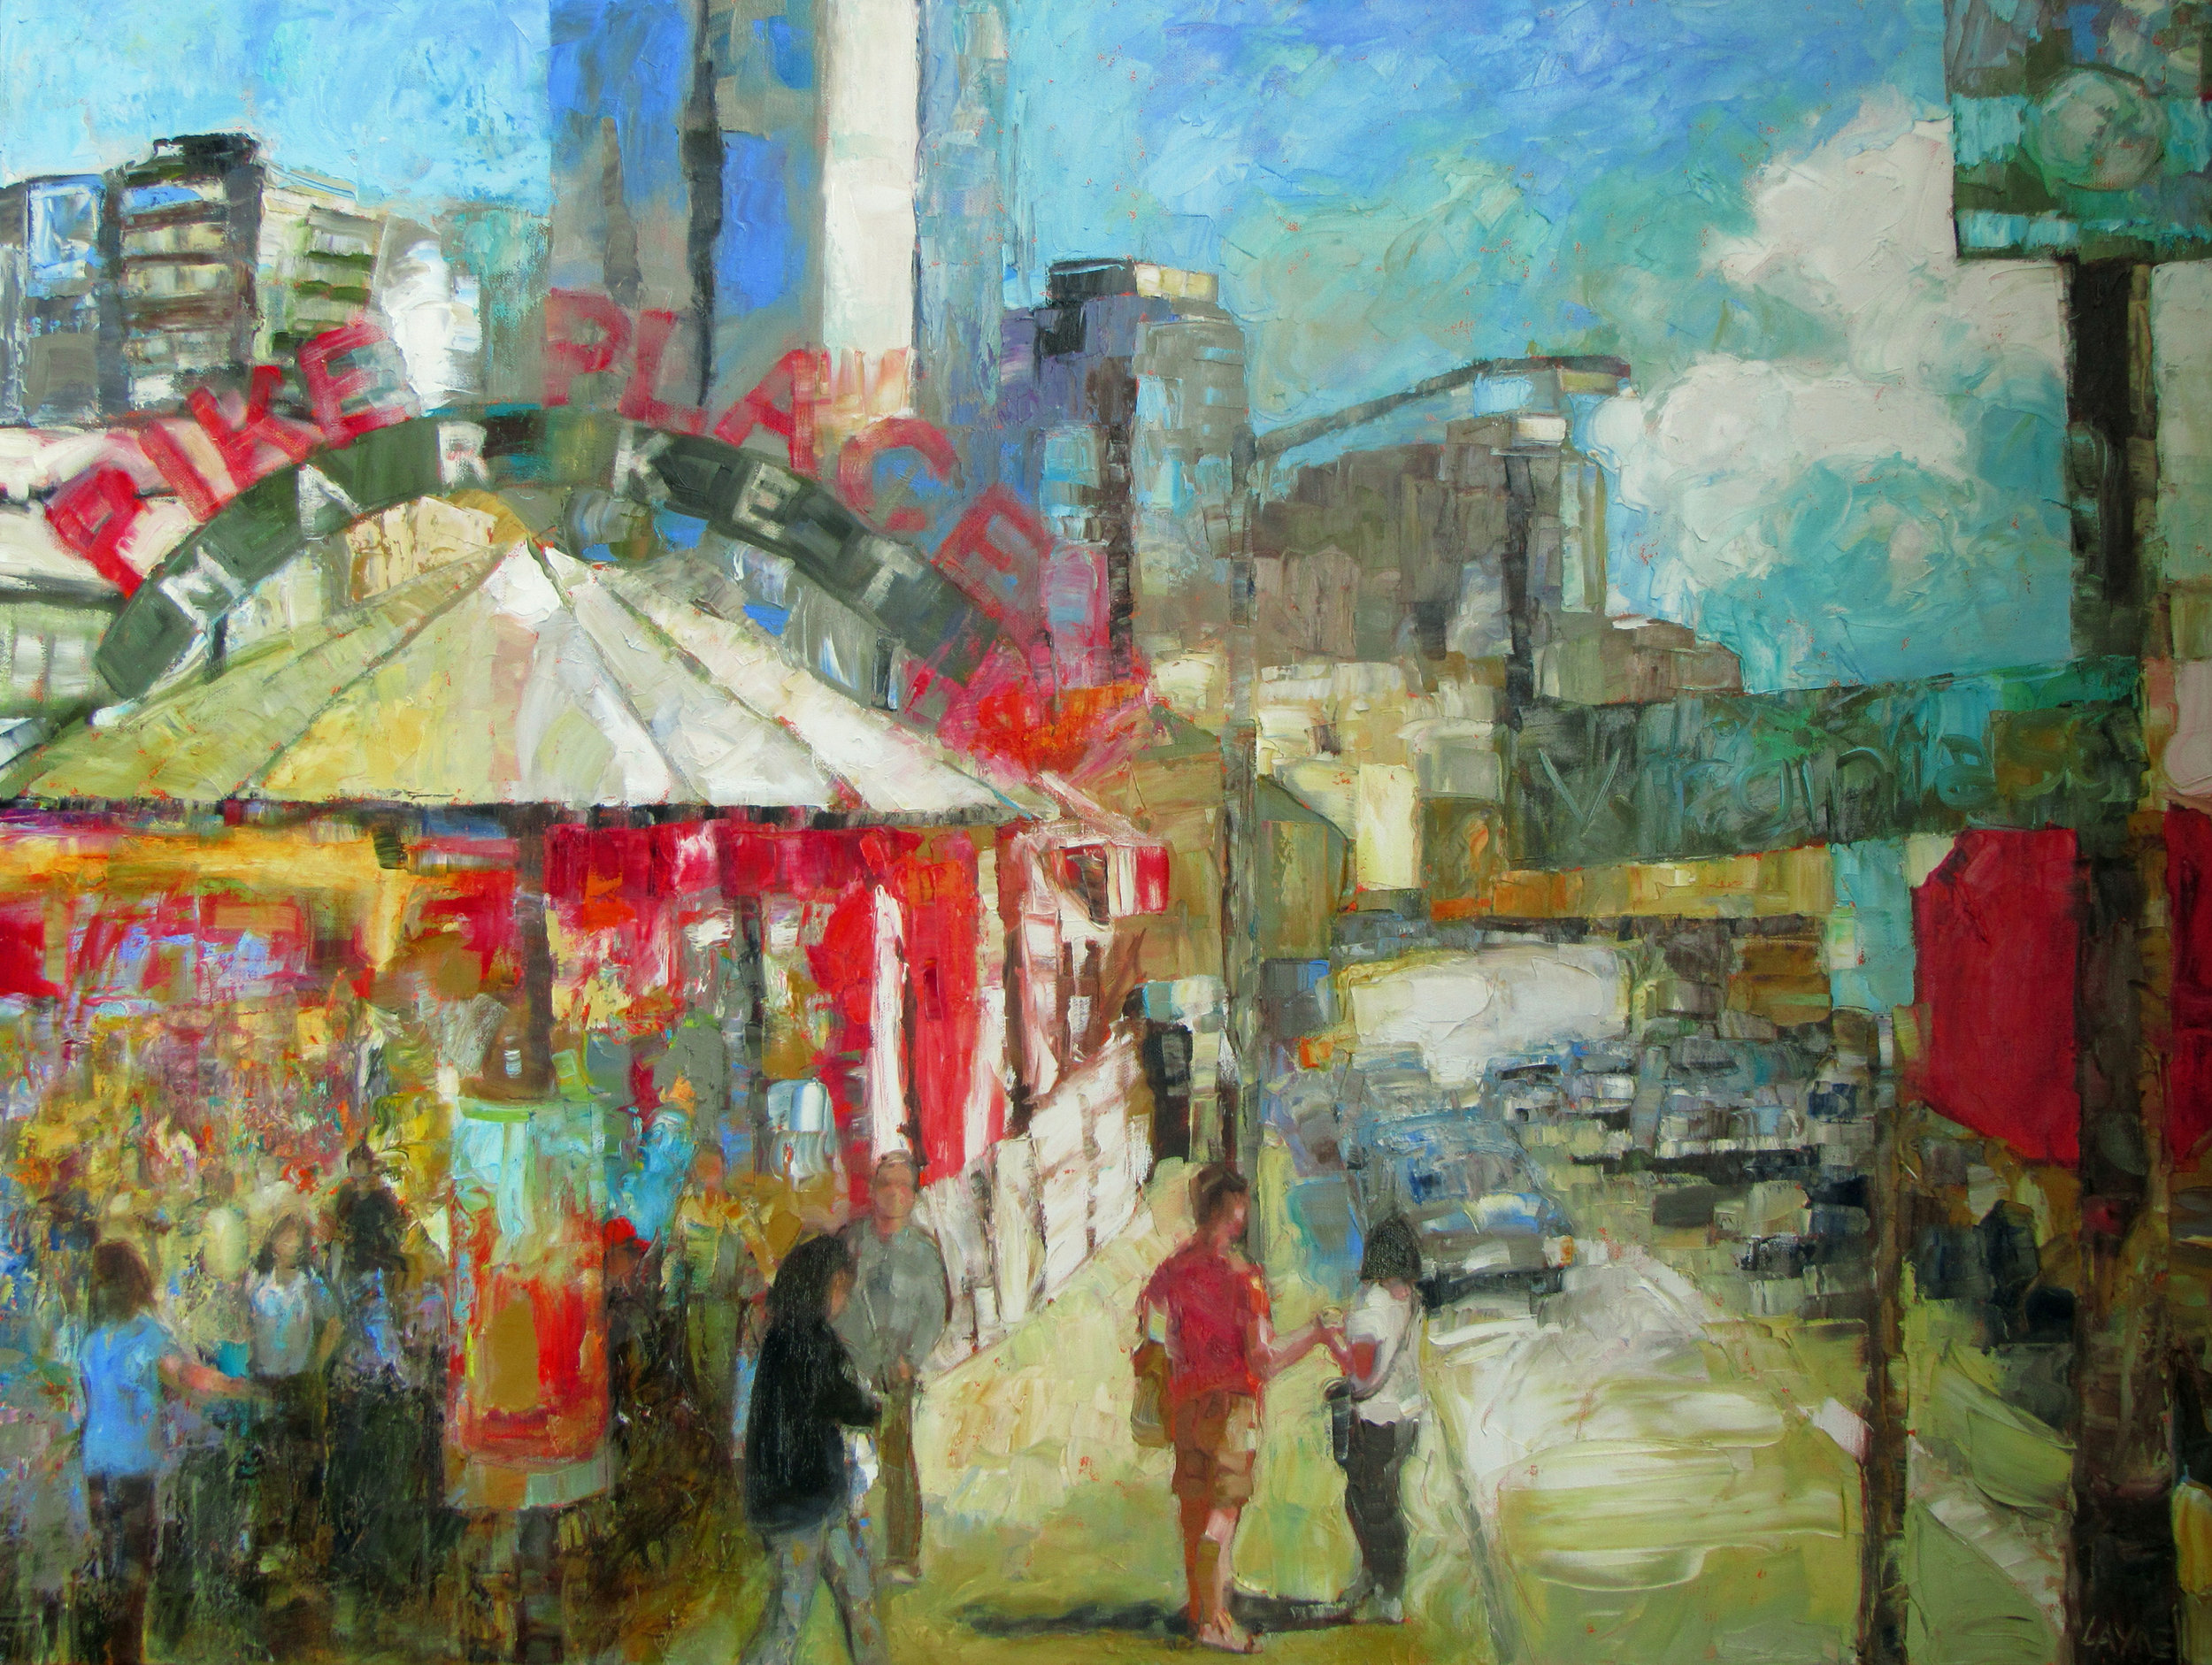 Lively Market Day#Oil on canvas#30x40#SOLD